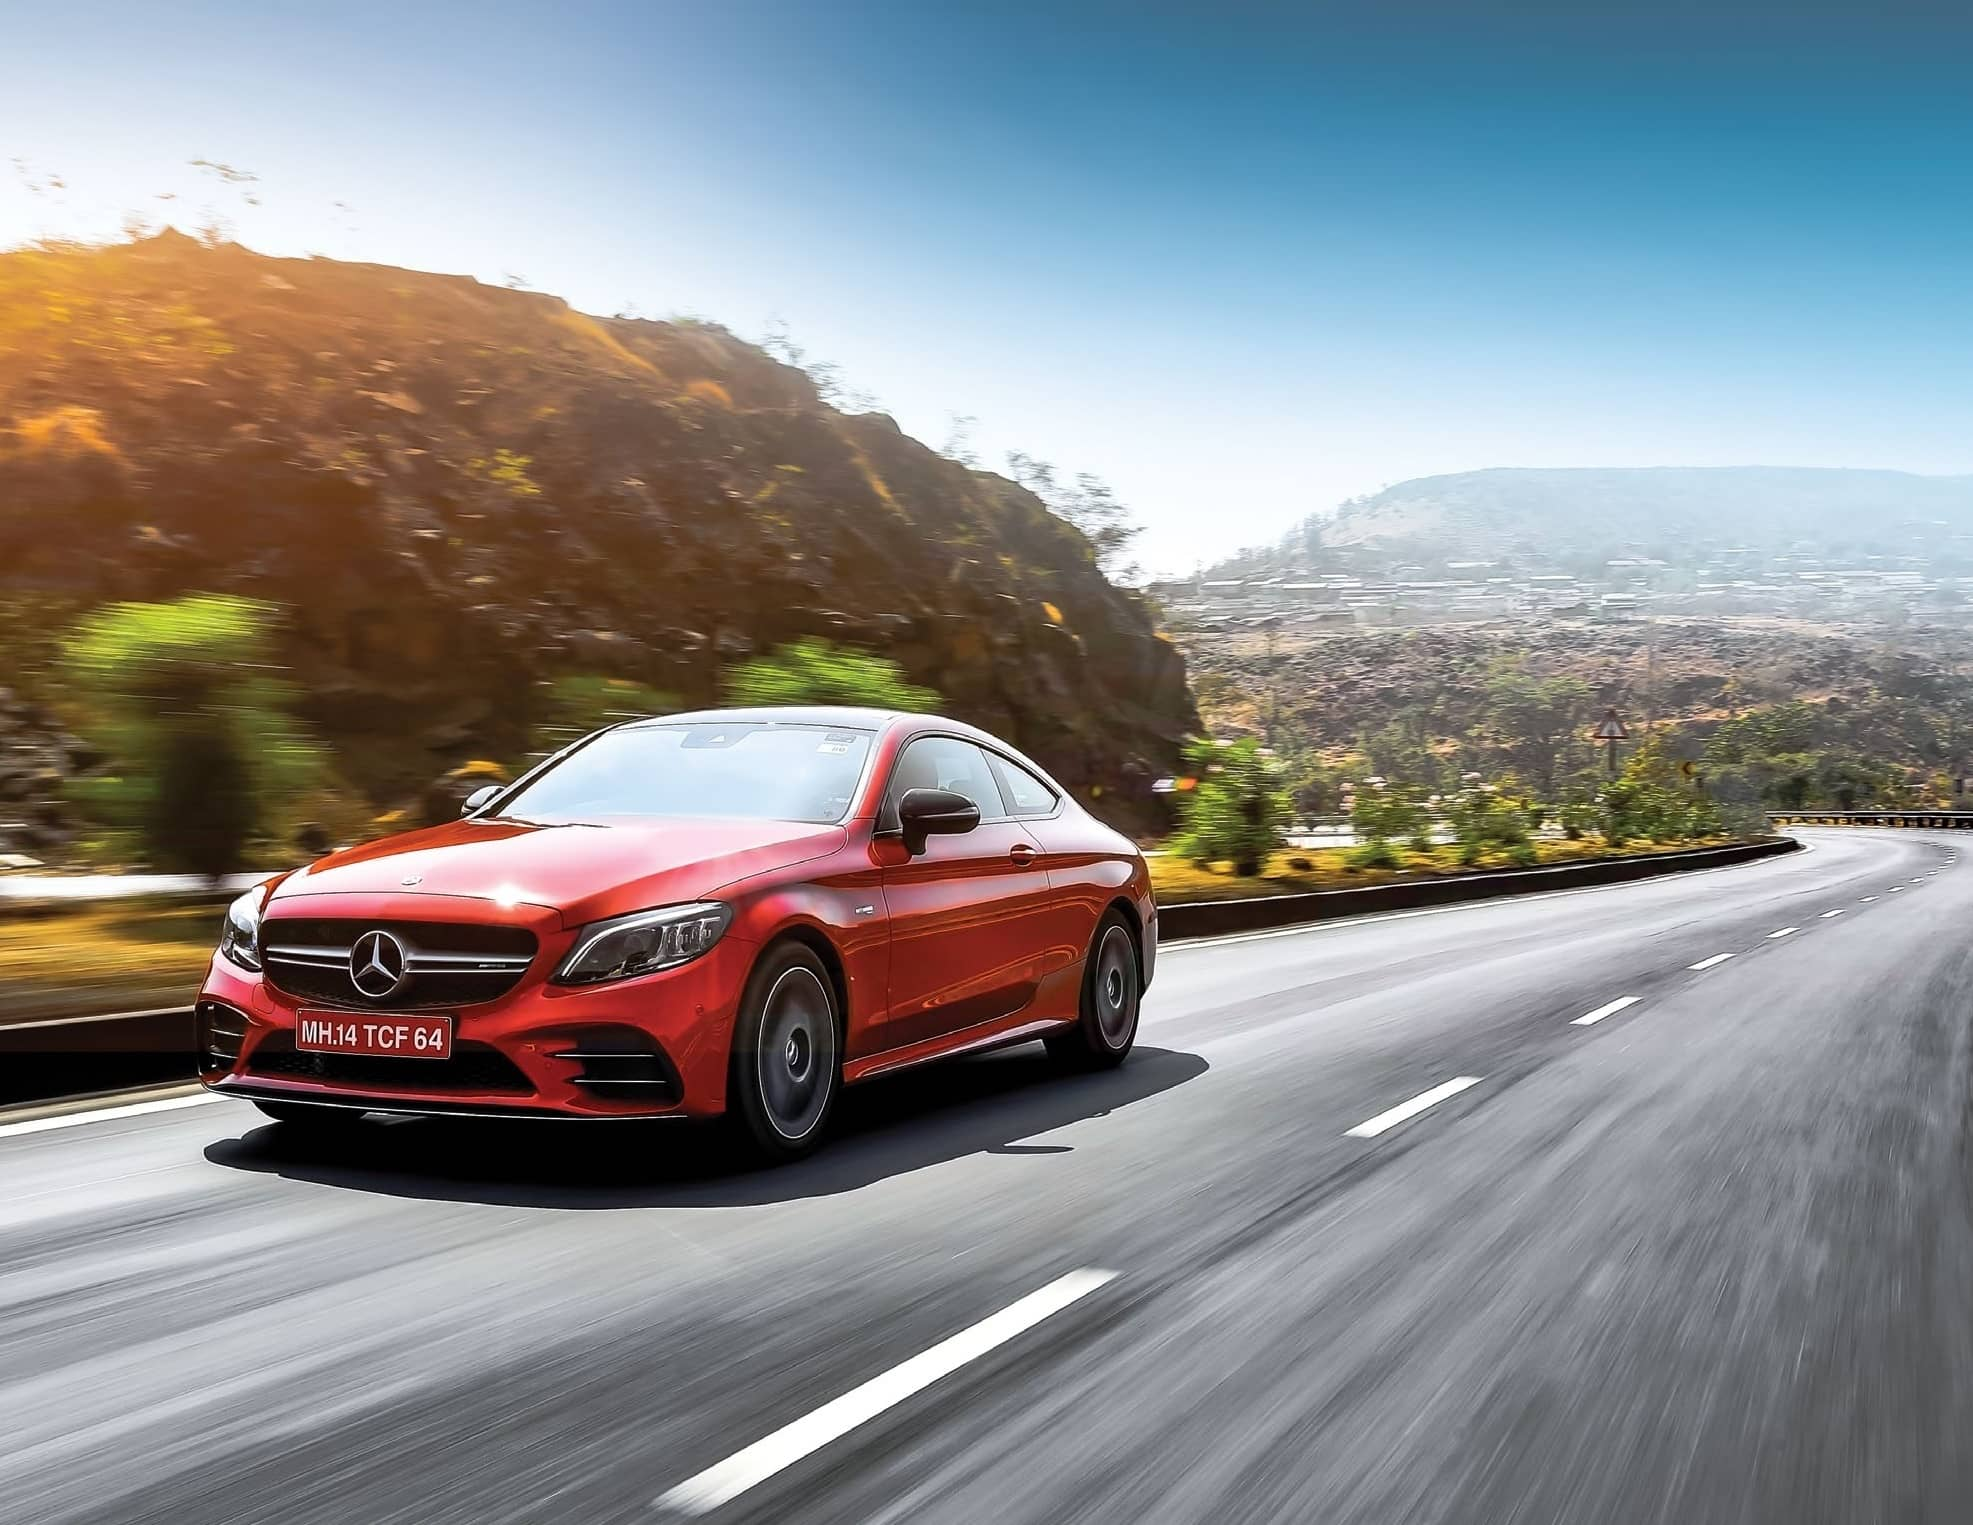 Mercedes - AMG C 43 Fast, Beautiful And Sings Wonderfully Too!